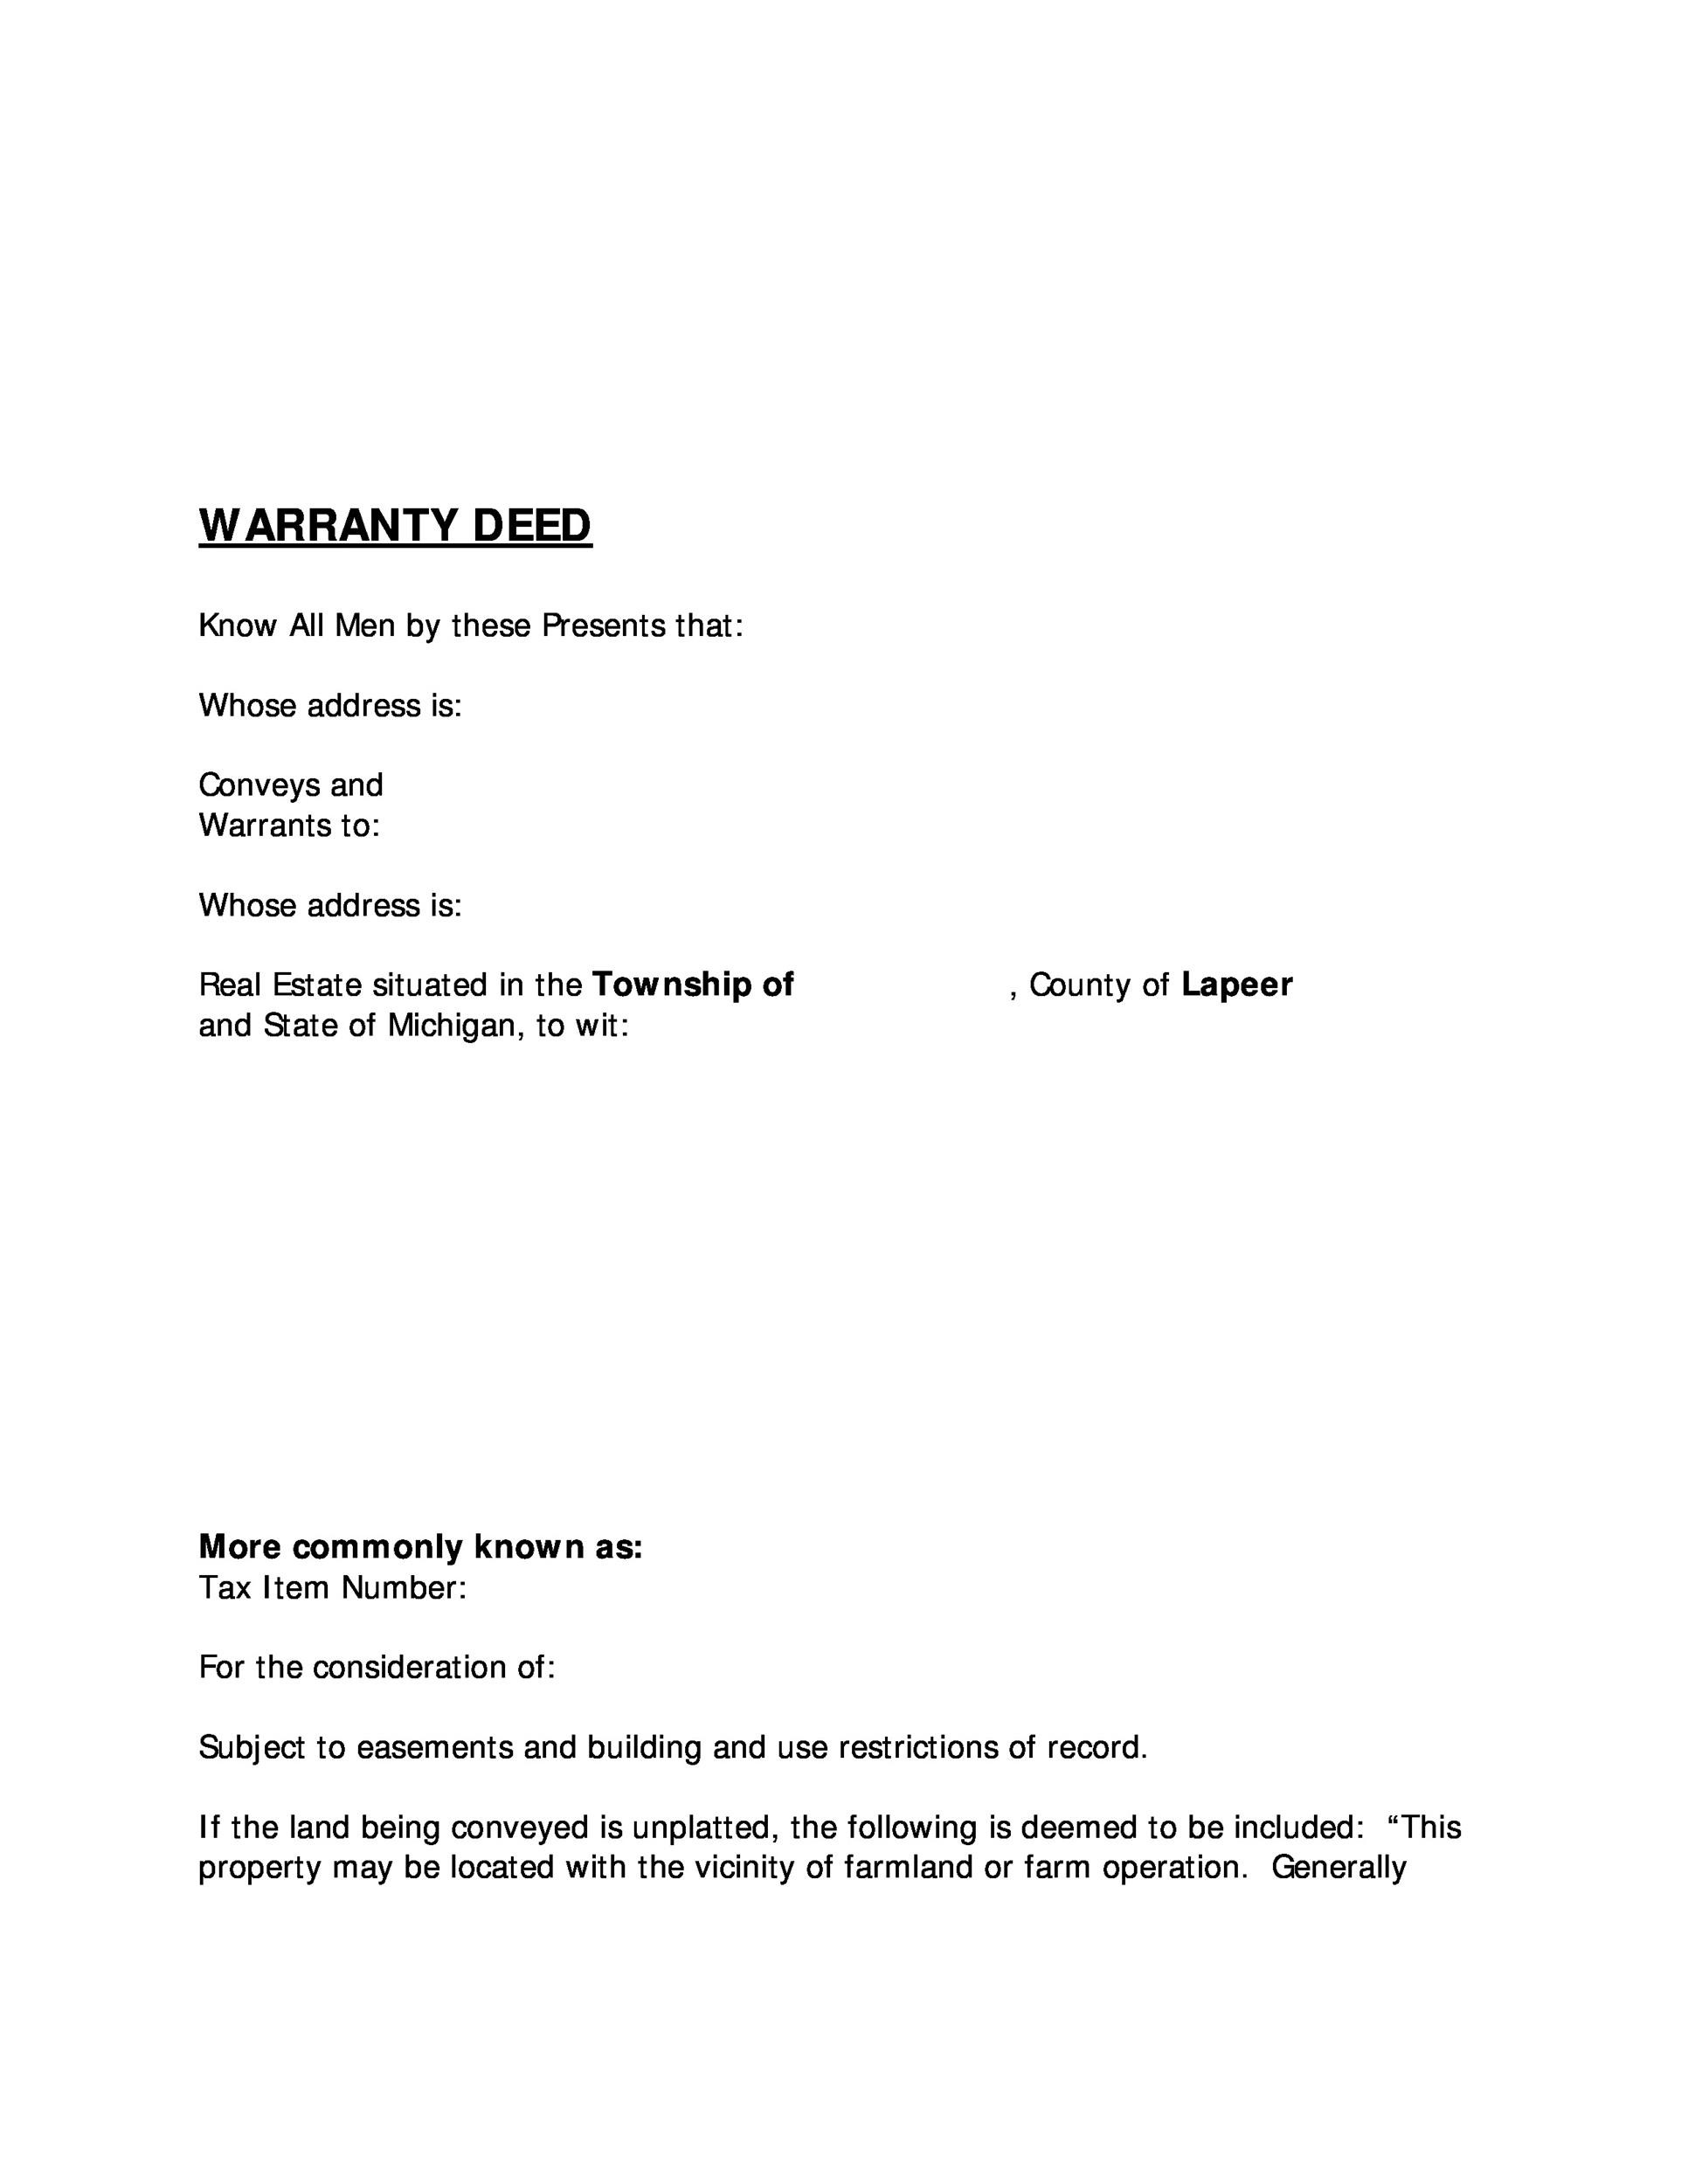 Free Warranty deed template 01